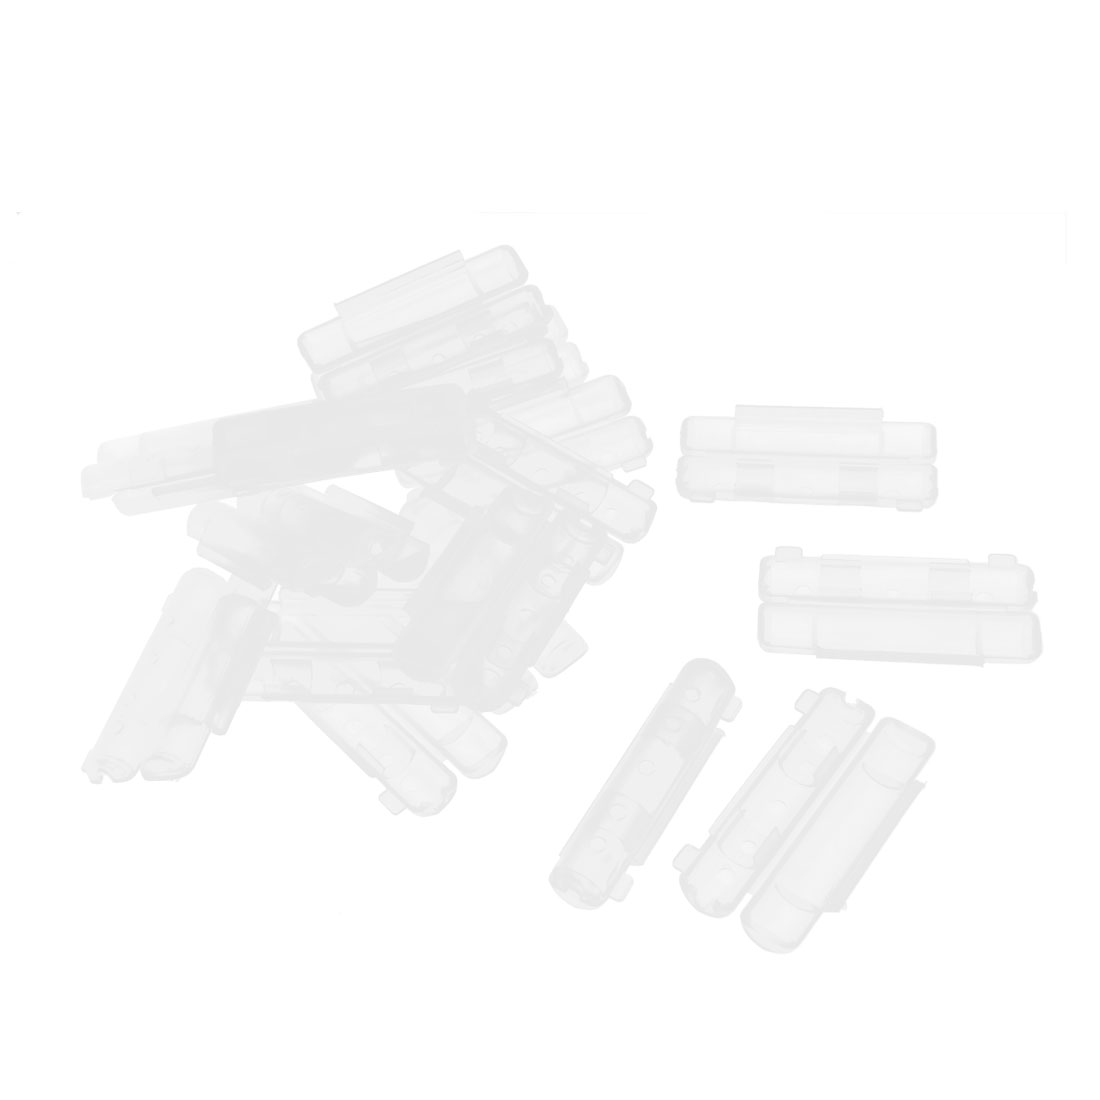 20 Pcs Clear Plastic Panel Mount PCB Fuse Holder Case Cover 55 x 20mm